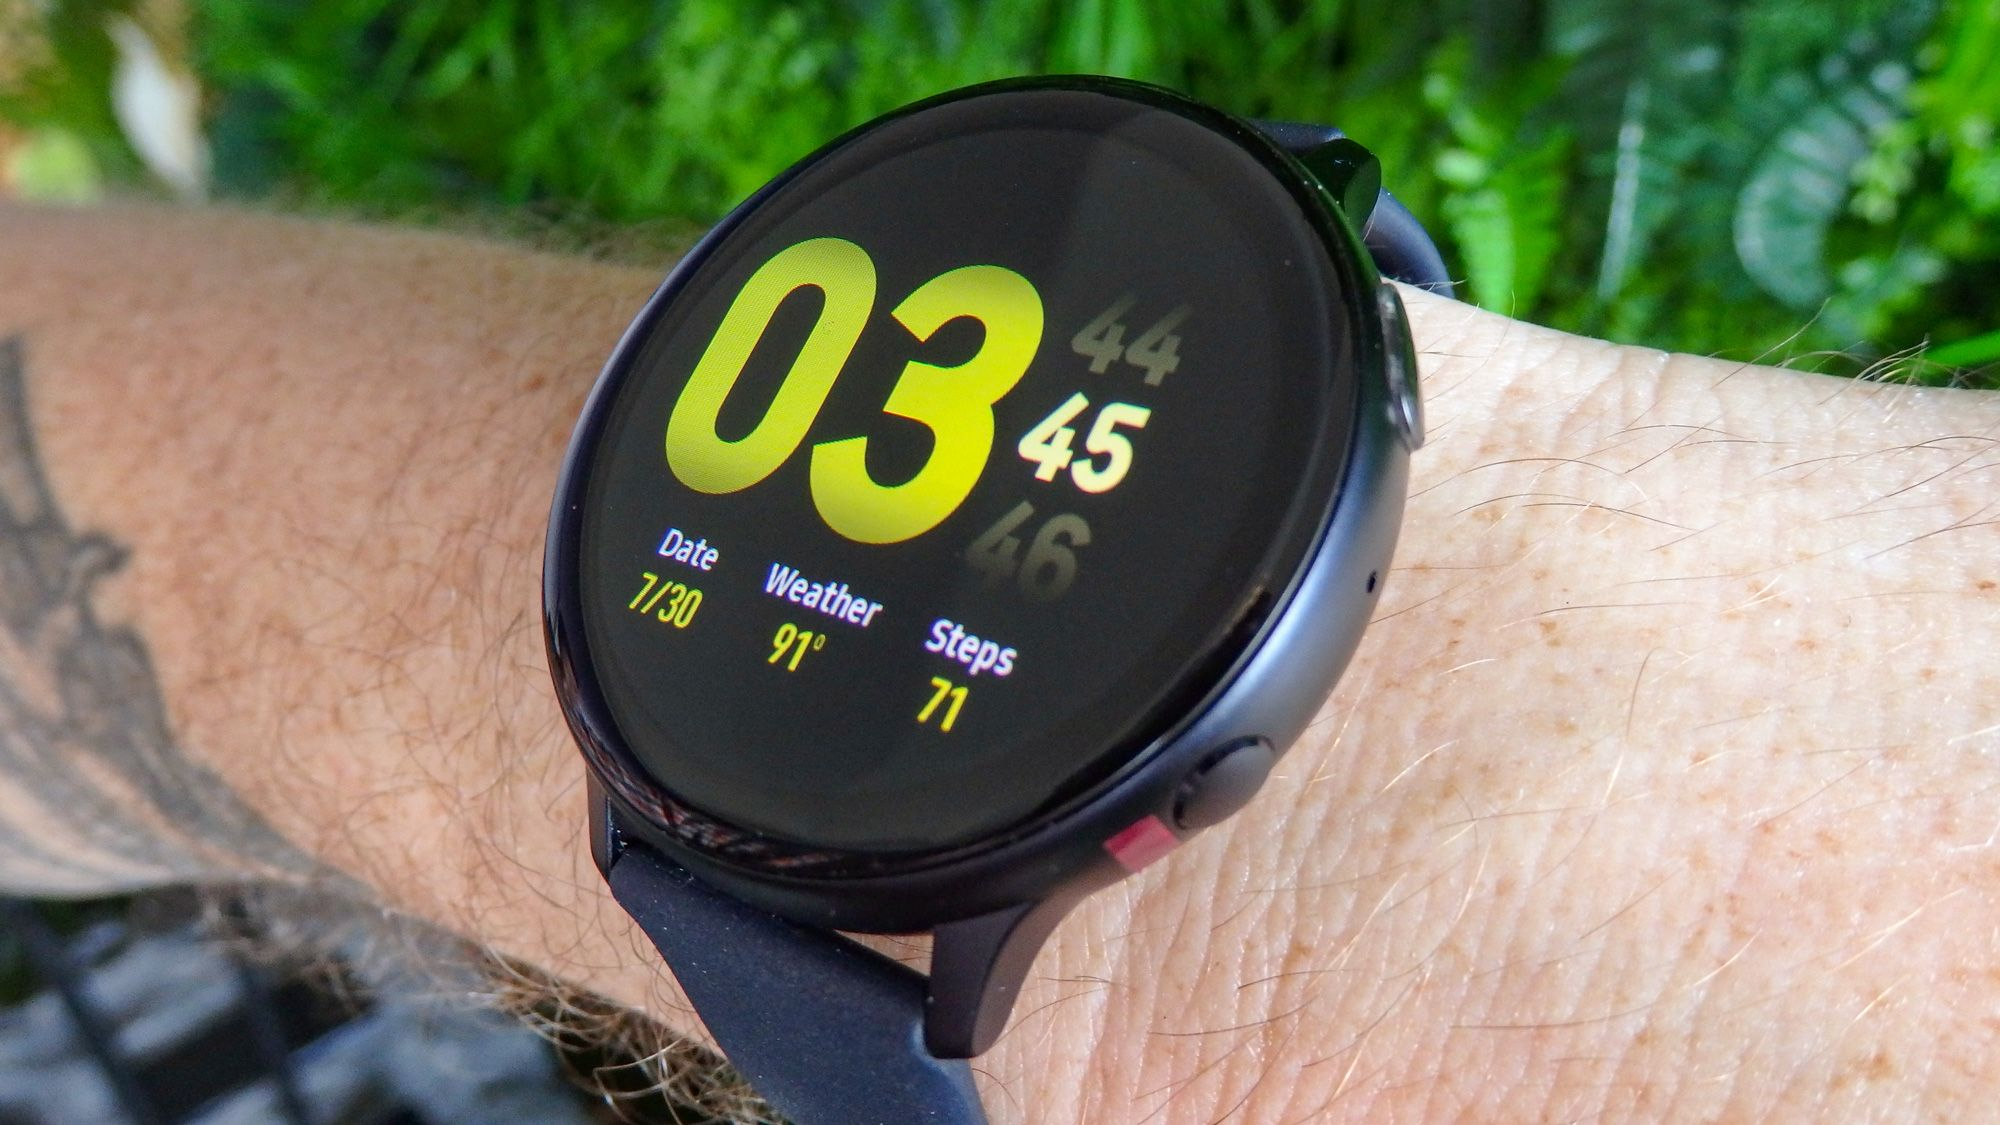 Samsung Galaxy Watch 3 Leaks Show Two Sizes Ecg Sensor And A Look At The Design In 2020 Samsung Samsung Galaxy Galaxy